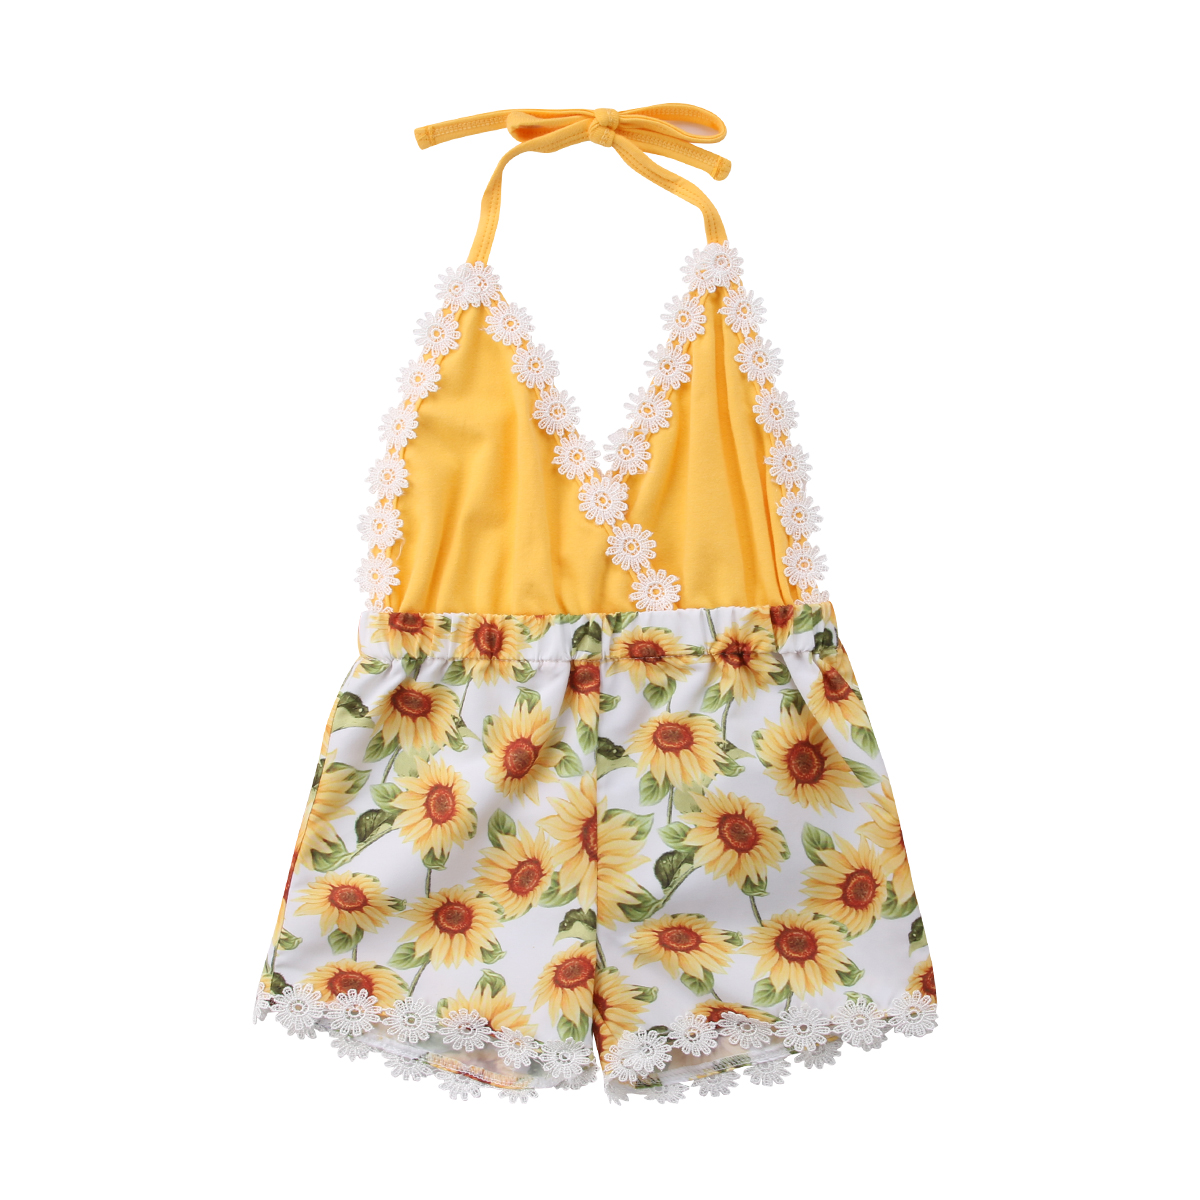 0-5Y Summer Sweet Pretty Newly Toddler Baby Girls   Romper   Jumpsuits Sleeveless Belt V-Neck Floral Print Yellow   Romper